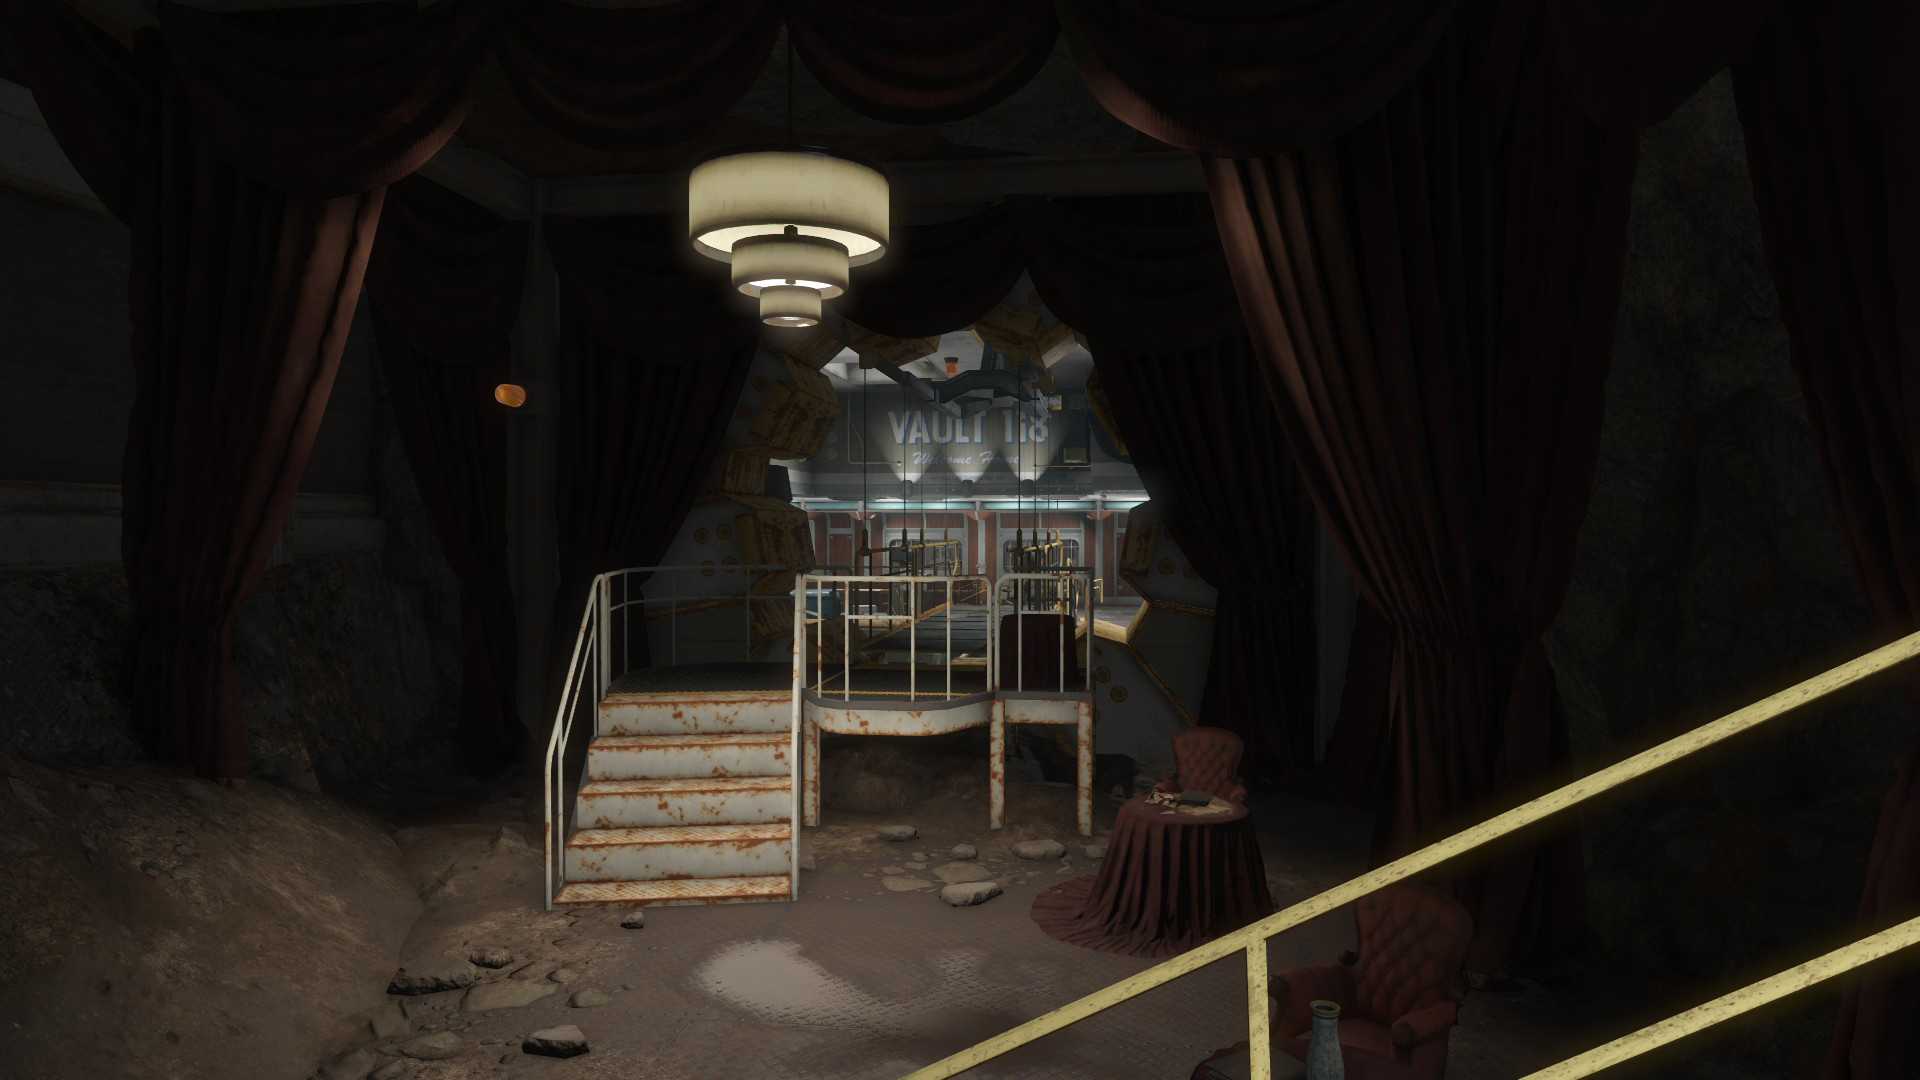 FO4-FarHarbor-Vault118-Entrance.jpeg